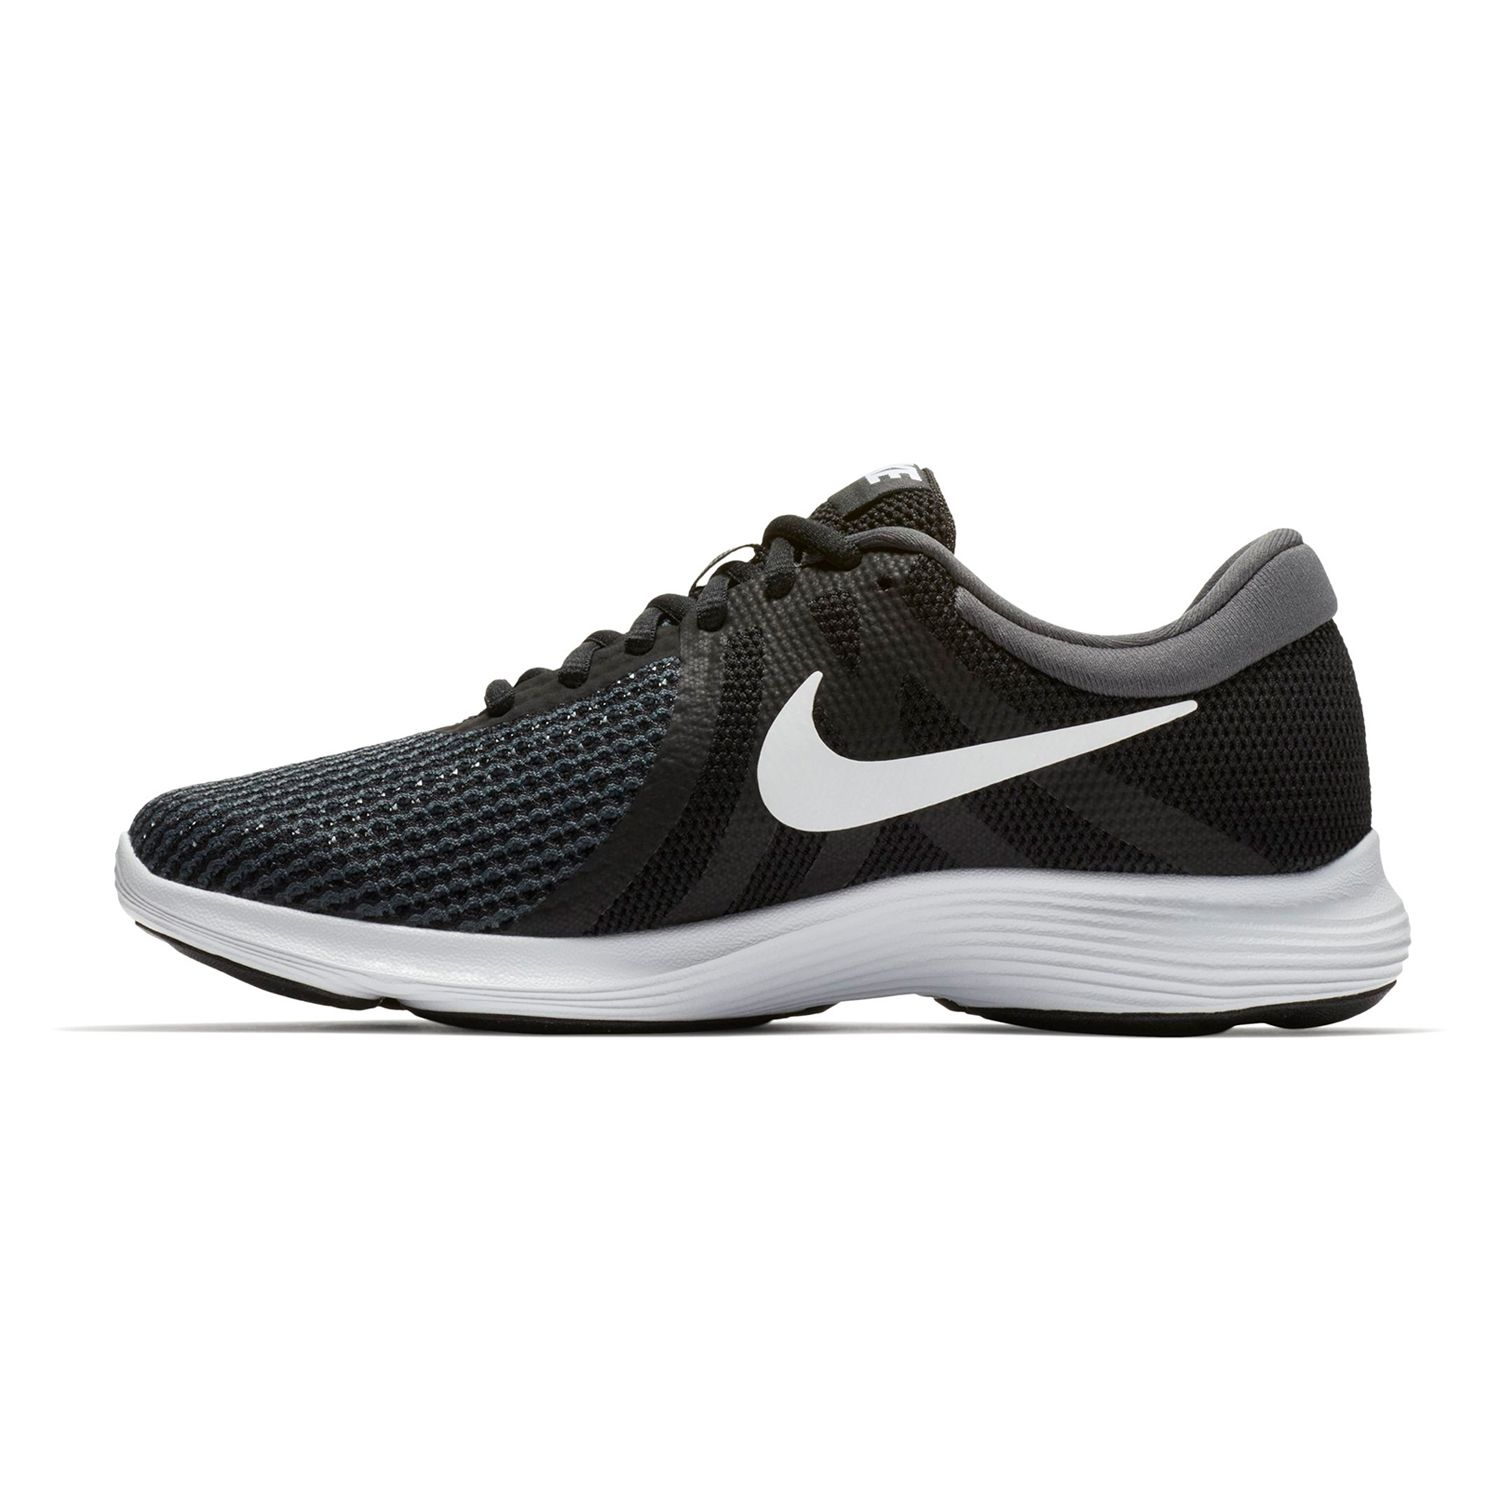 new products bdcc0 12752 Nike Shoes   Kohl s